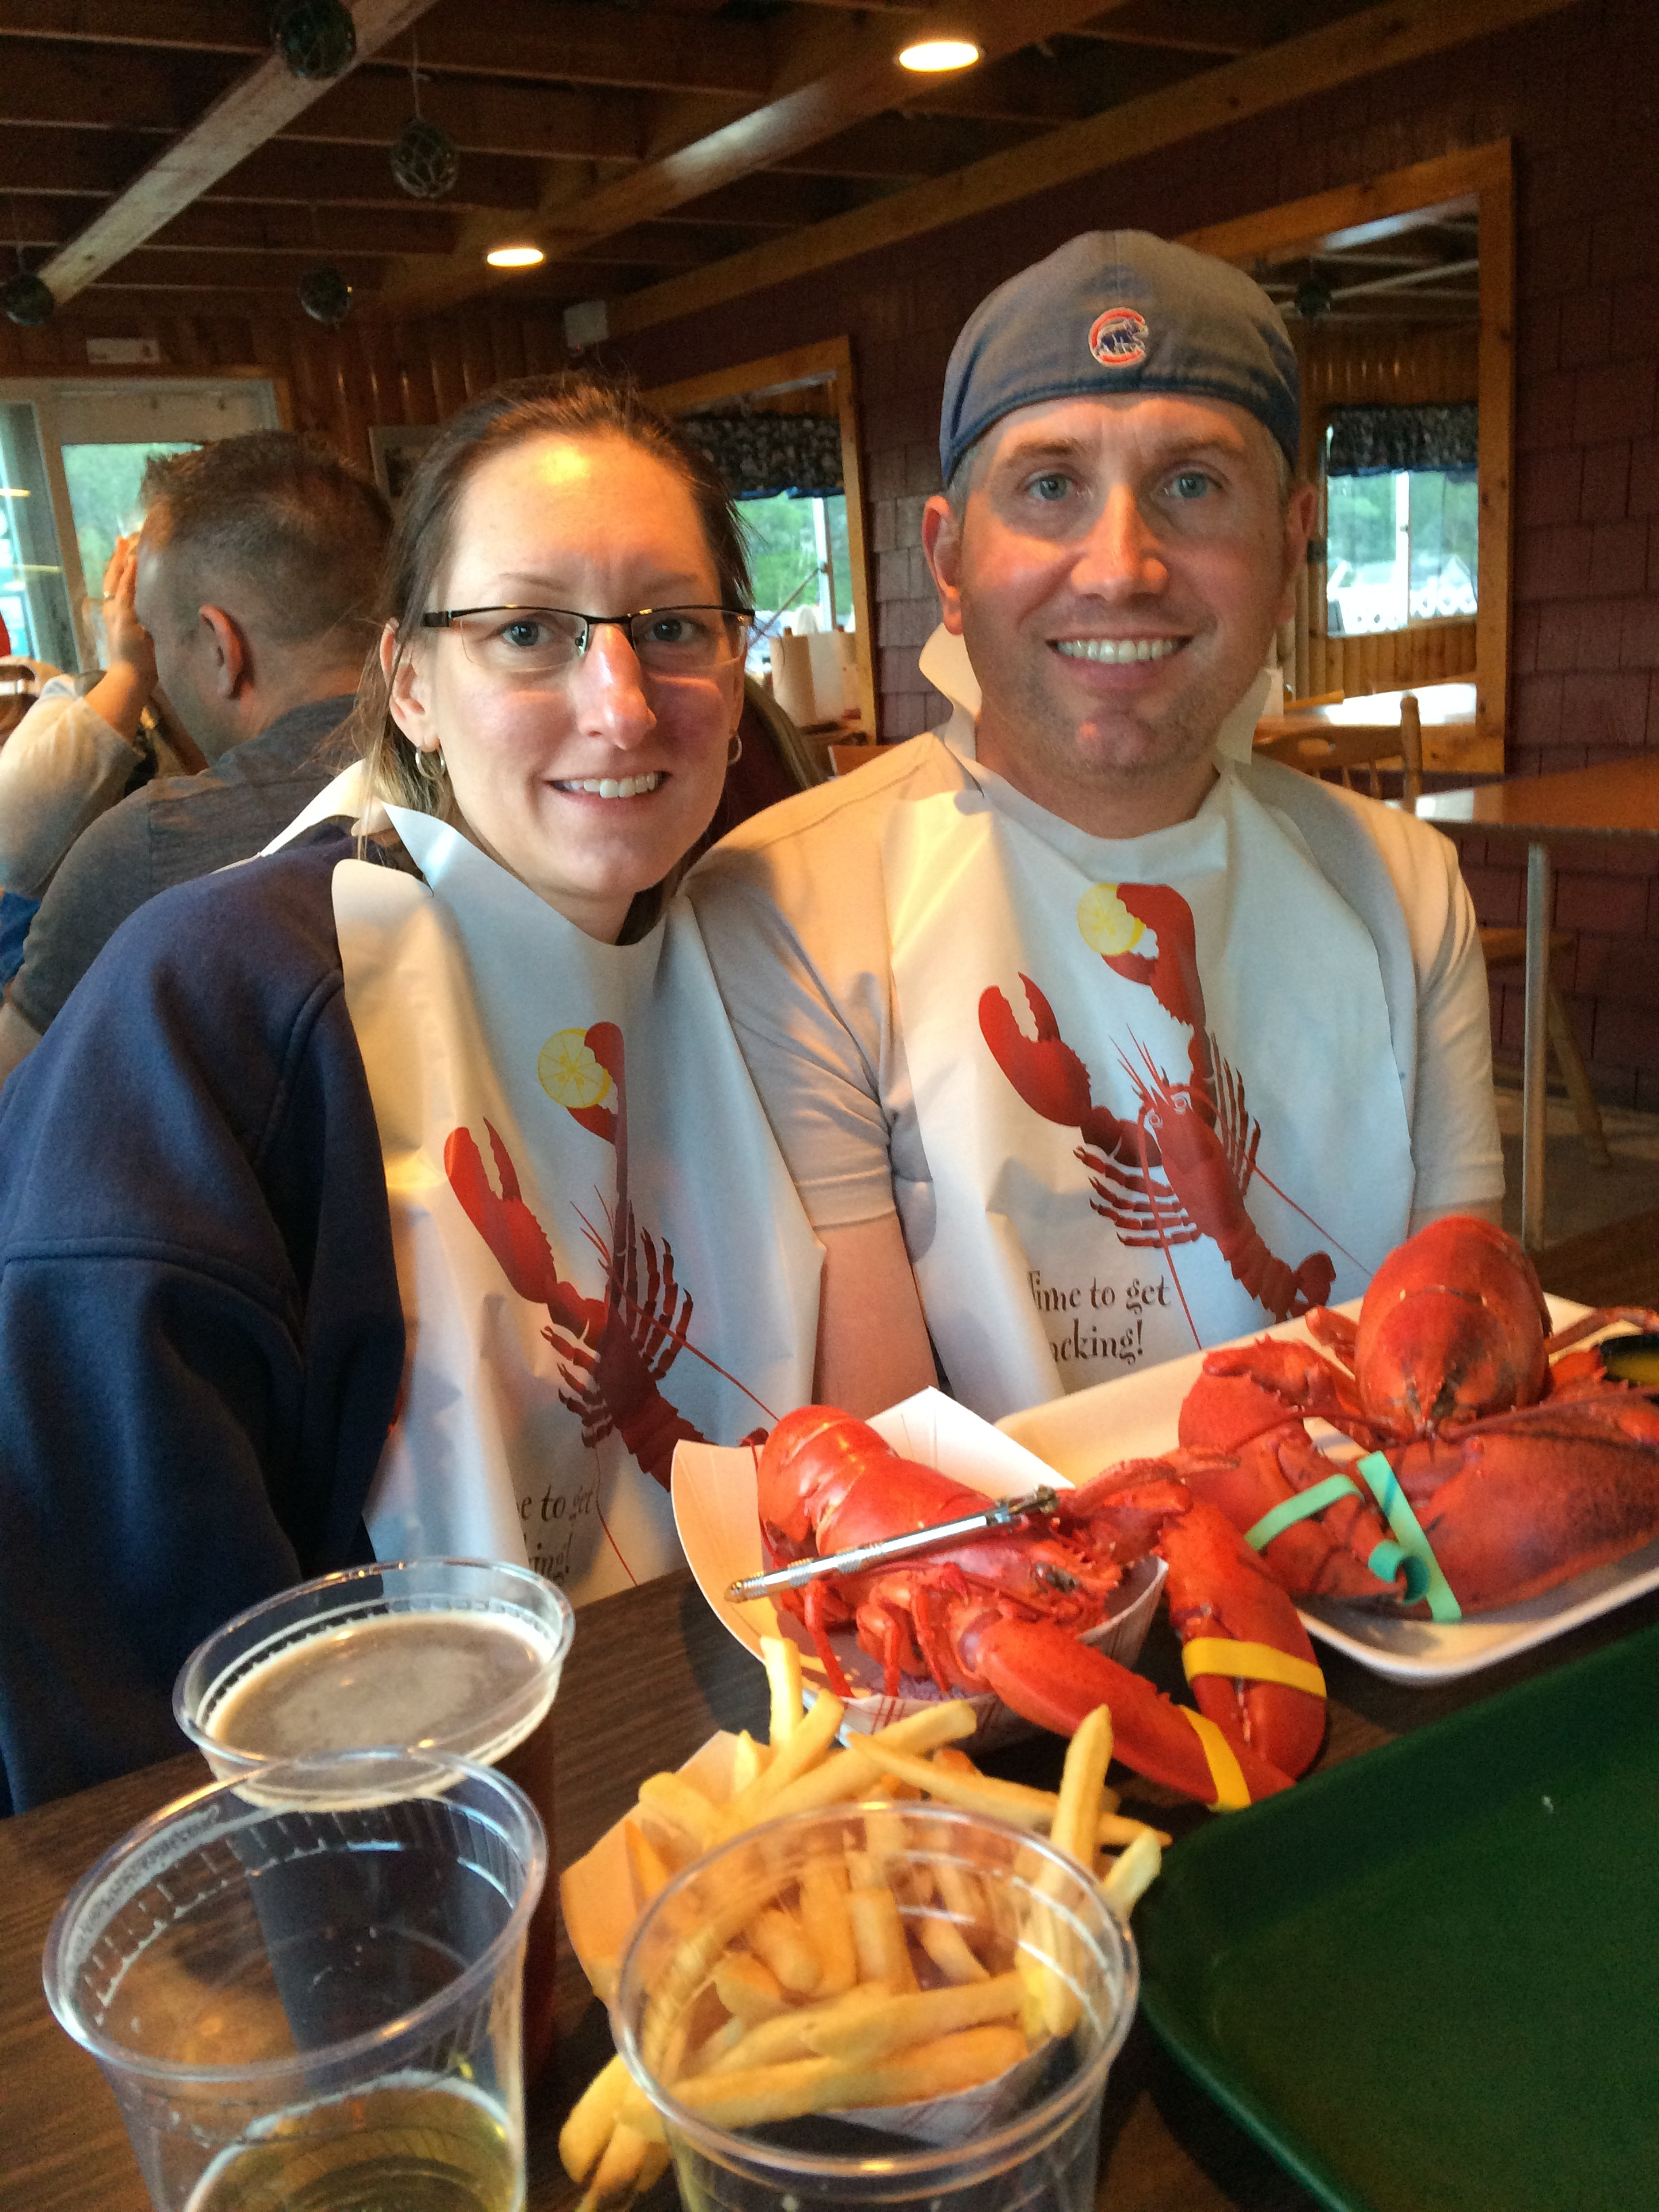 Maine Lobster, Pete's favorite!